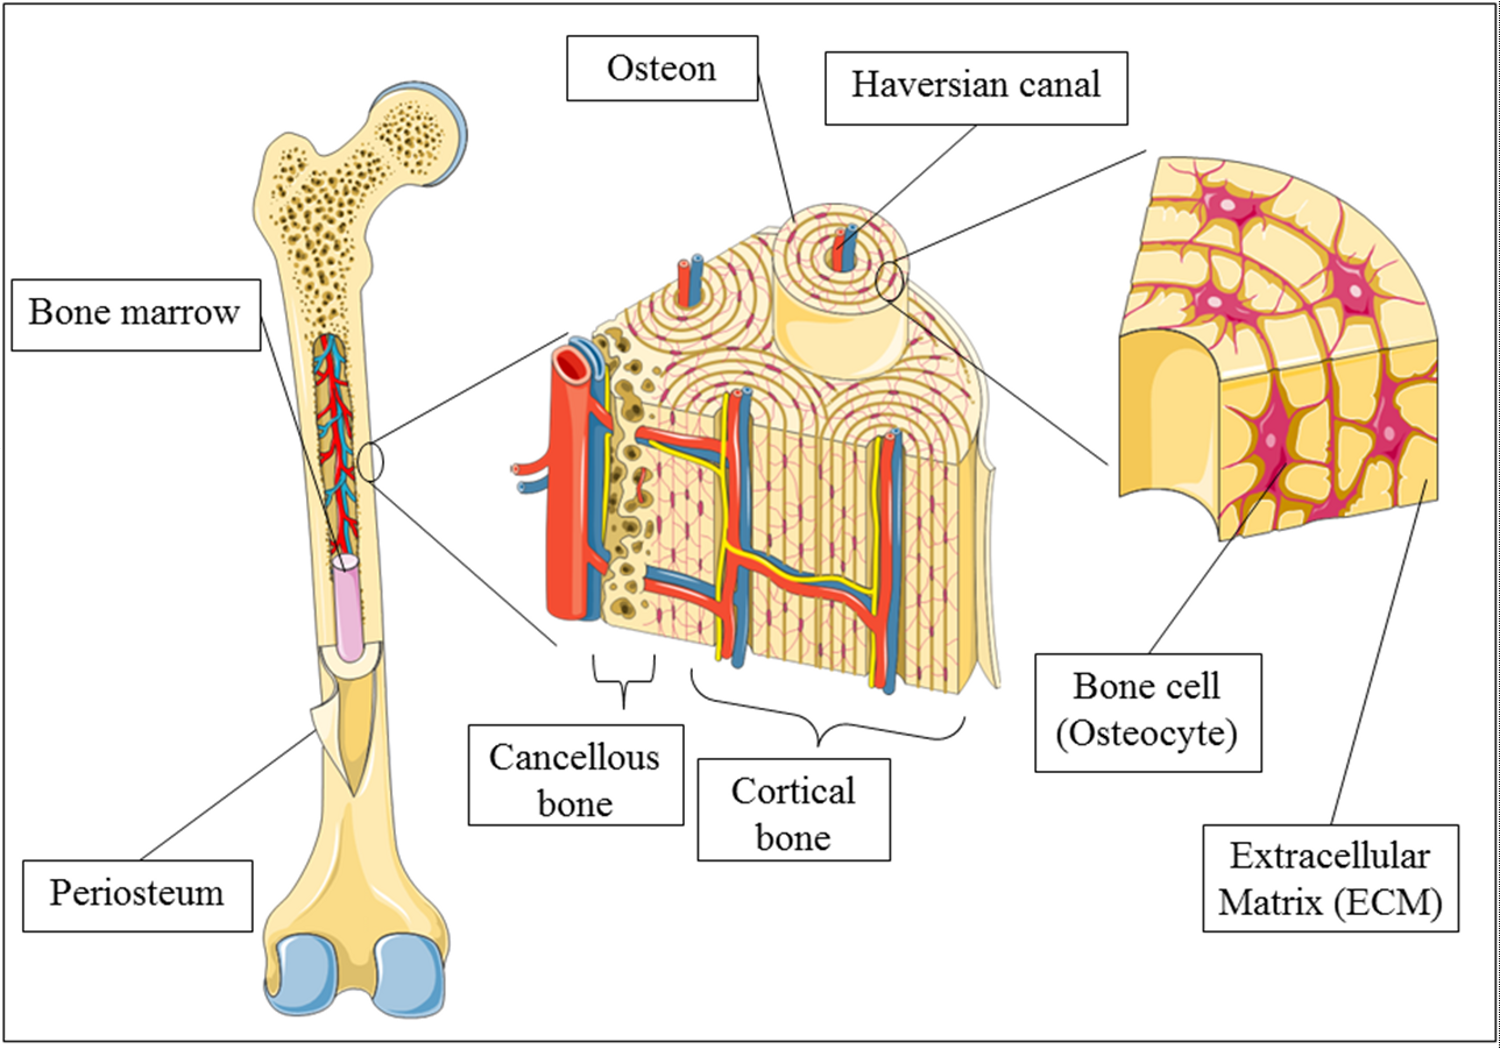 skeletal tissue Blood vessels and nerve fibers are distributed throughout the entirety of skeletal  tissue, and play important roles during bone development and fracture healing.